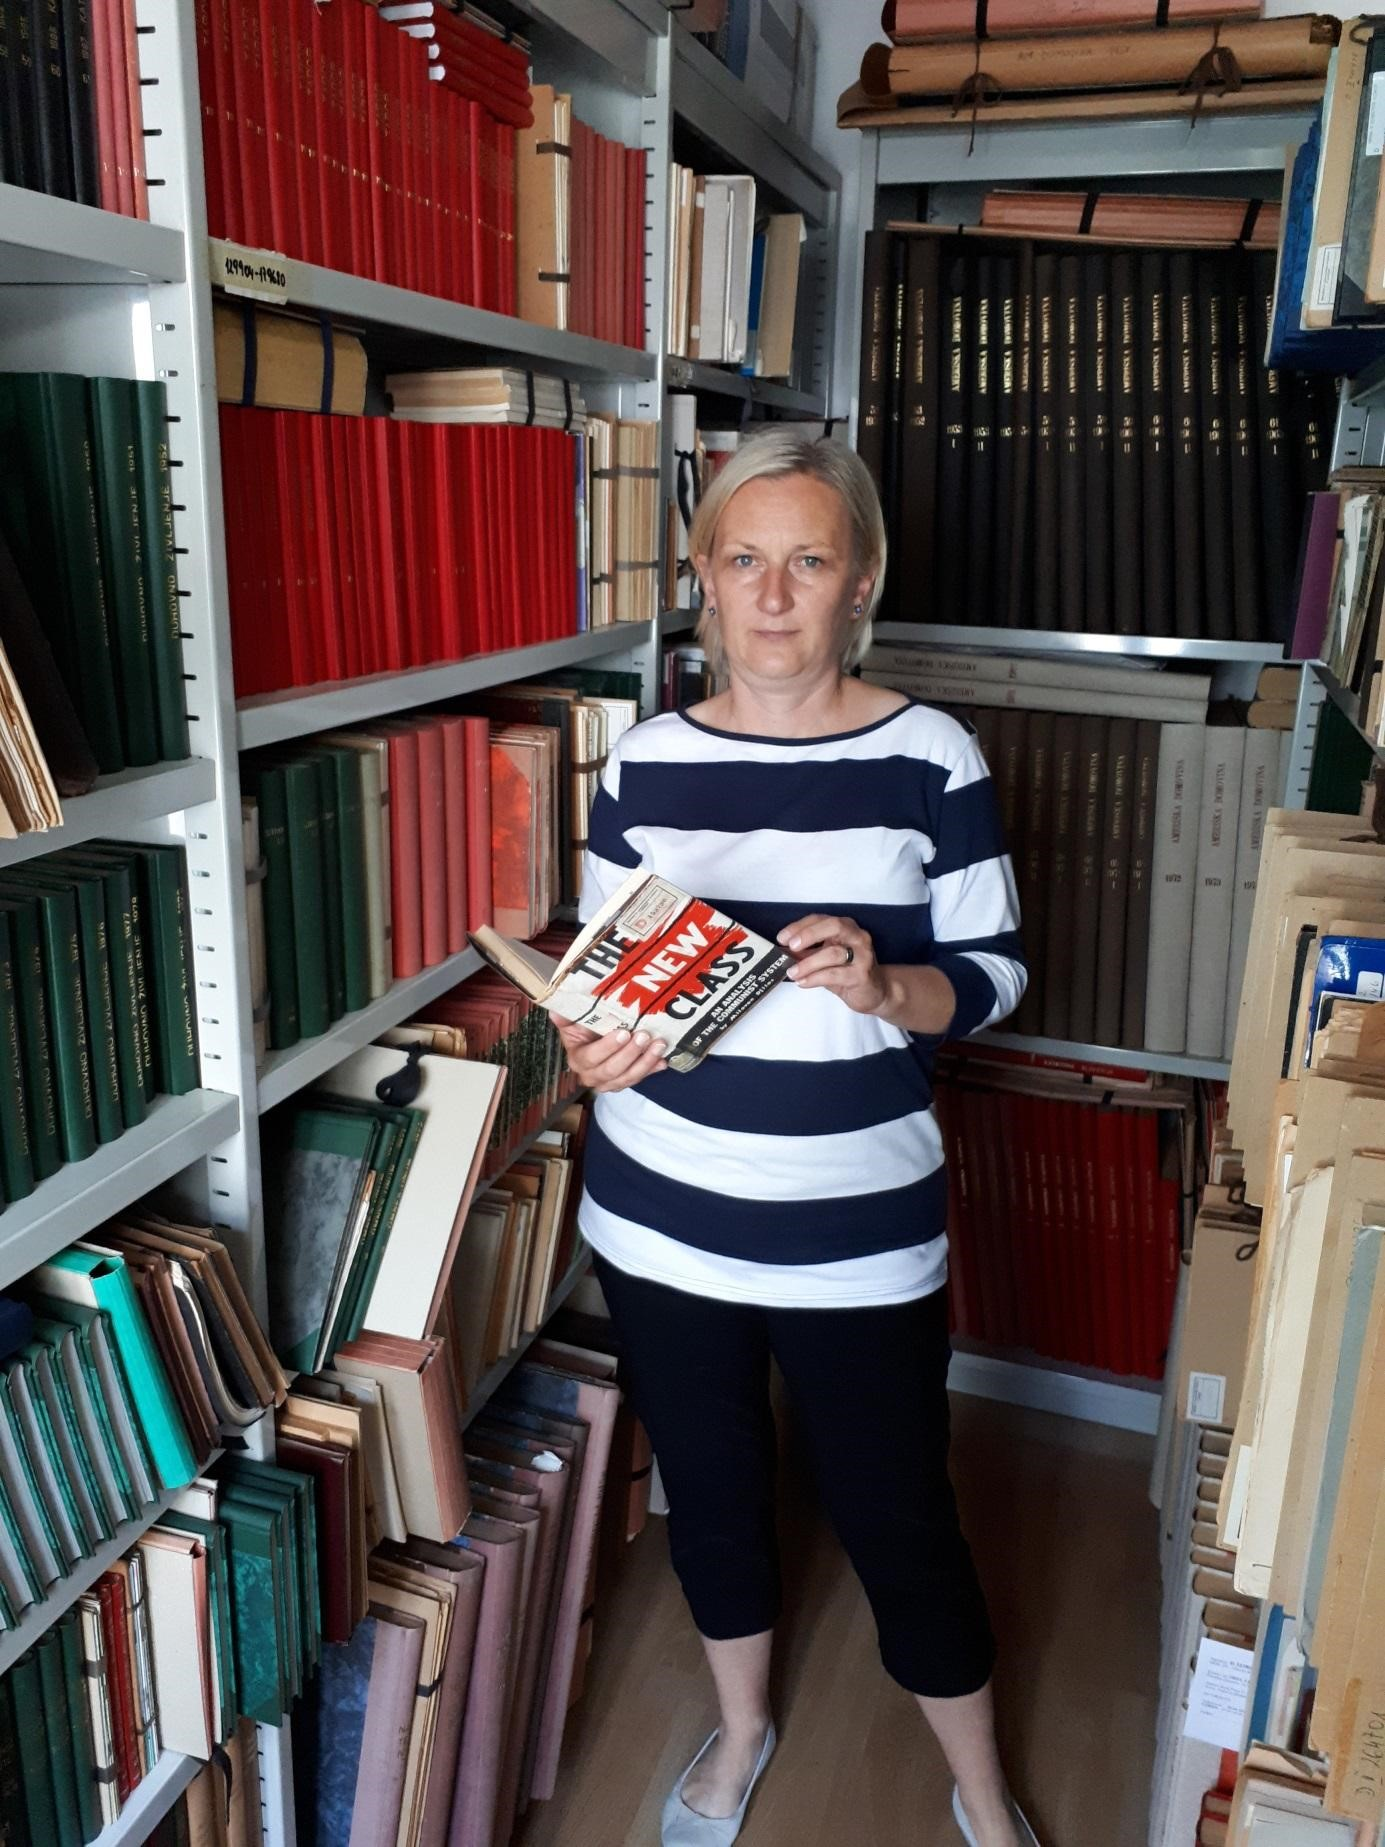 Helena Janežič and D-fund in the background, which is located in the Collections of the Slovenian Press Outside of the Republic of Slovenia in the National and University Library in Ljubljana (2018-05-24).